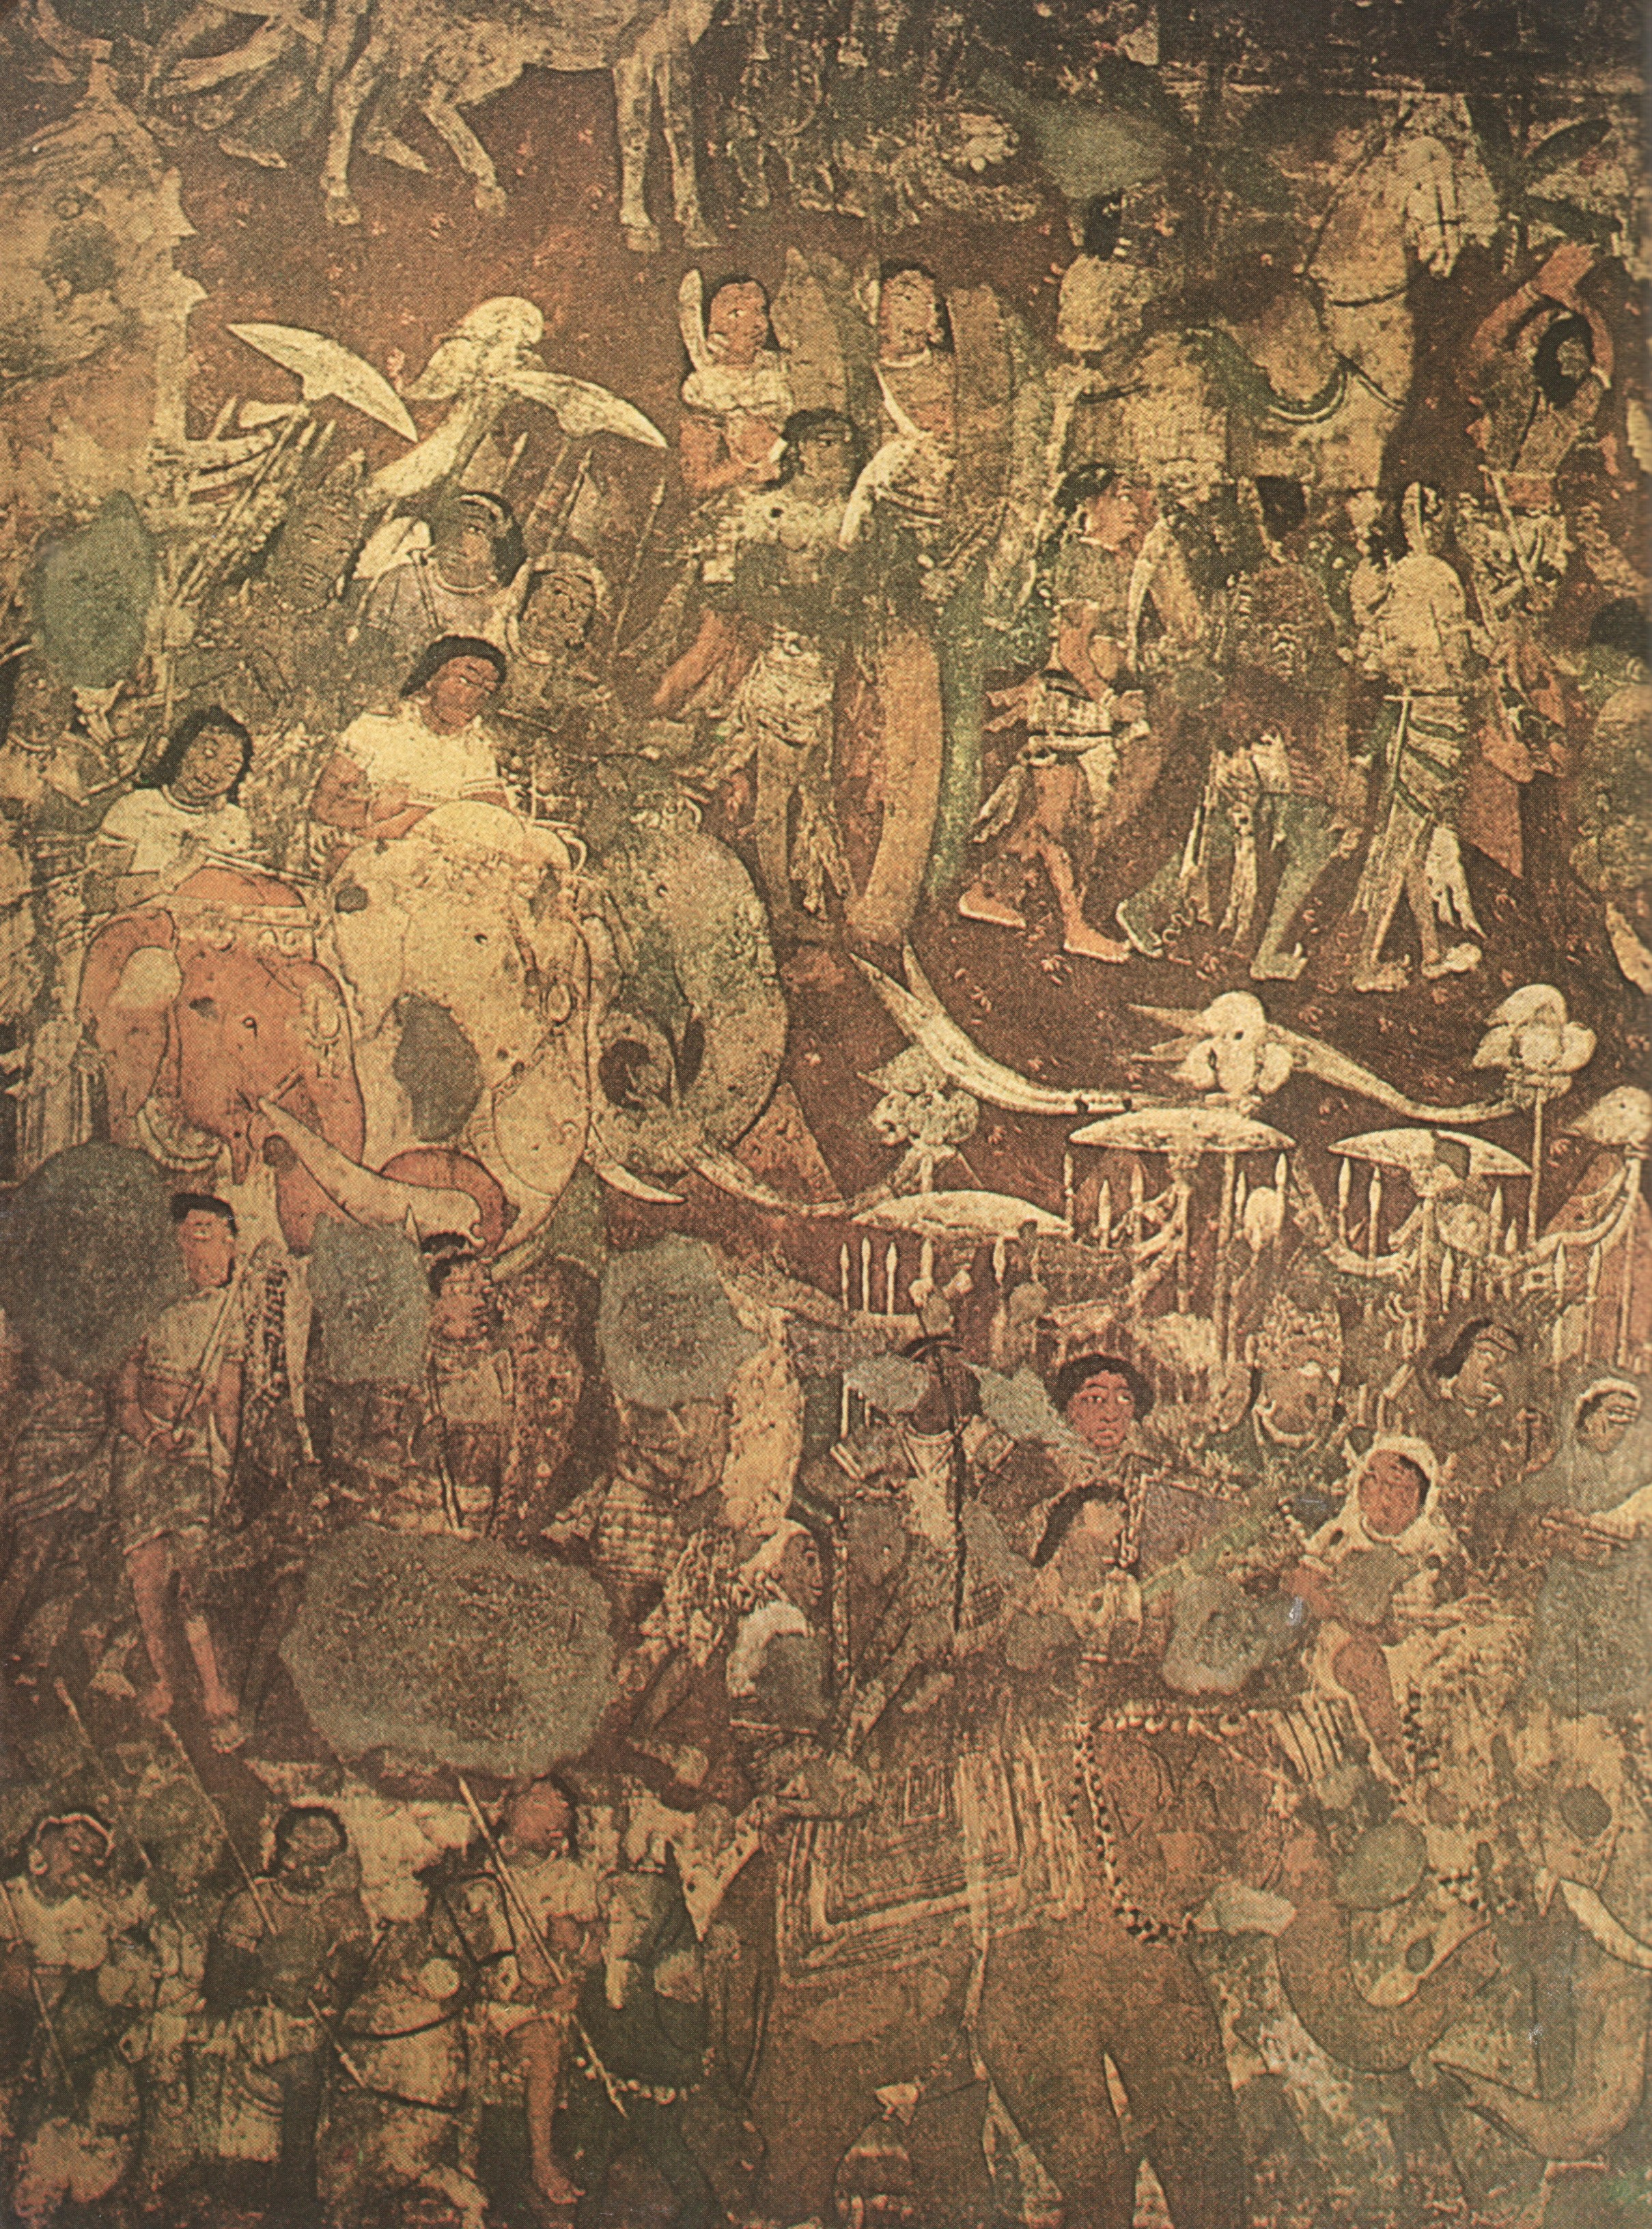 ajanta paintings The different phases of ajanta paintings dieter schlingloff introduction the paintings of the second century bc 1 general observations 2 the buddha in previous existences.